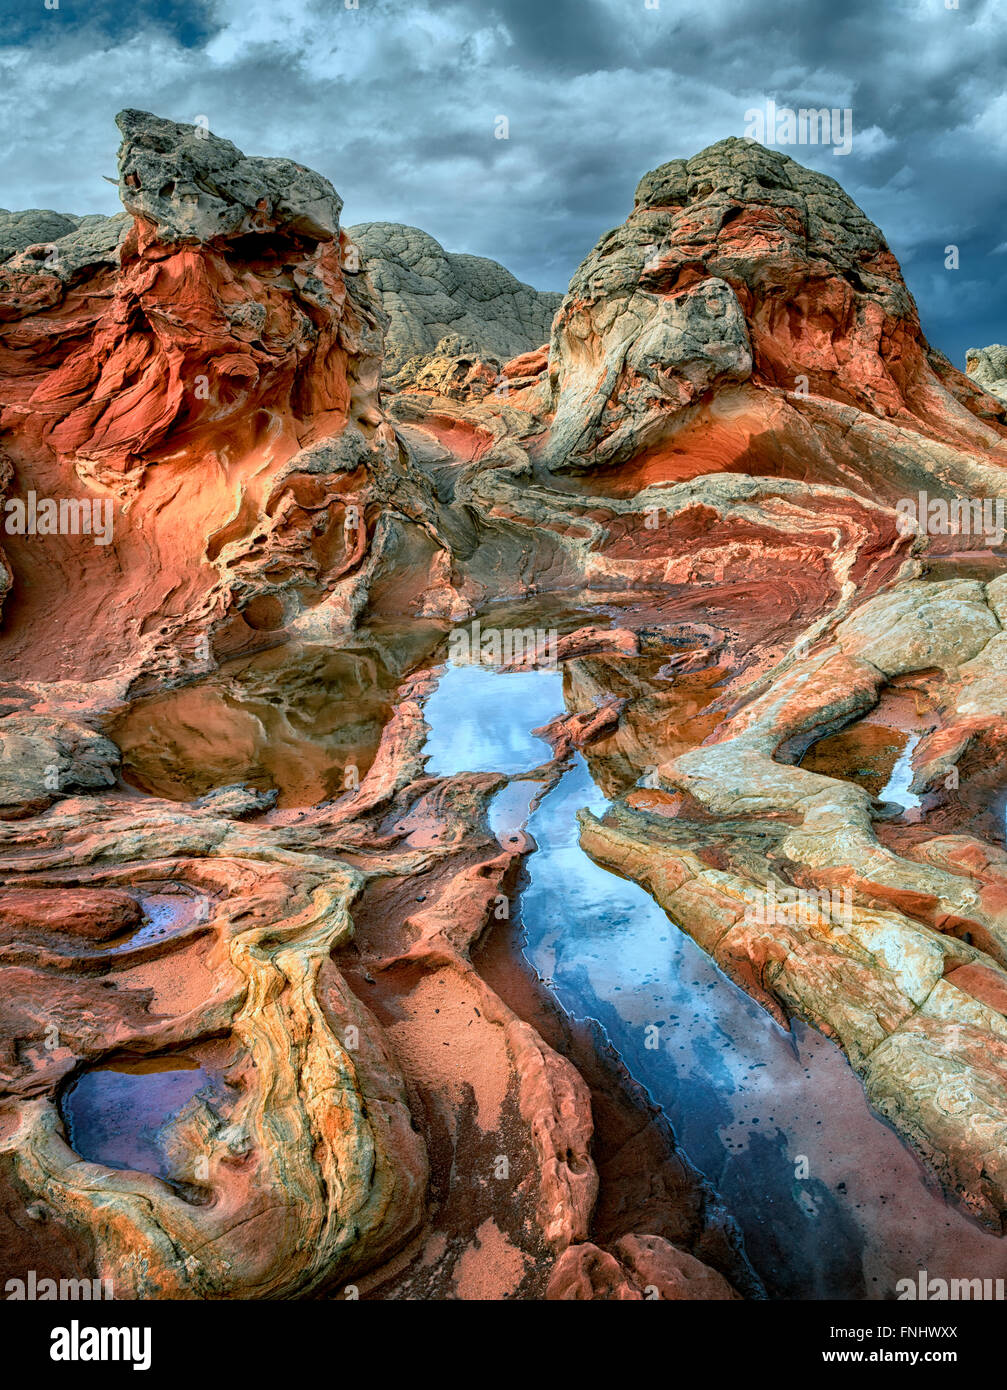 White Pocket with rain water pools. Vermilion Cliffs National Monument, Arizona - Stock Image